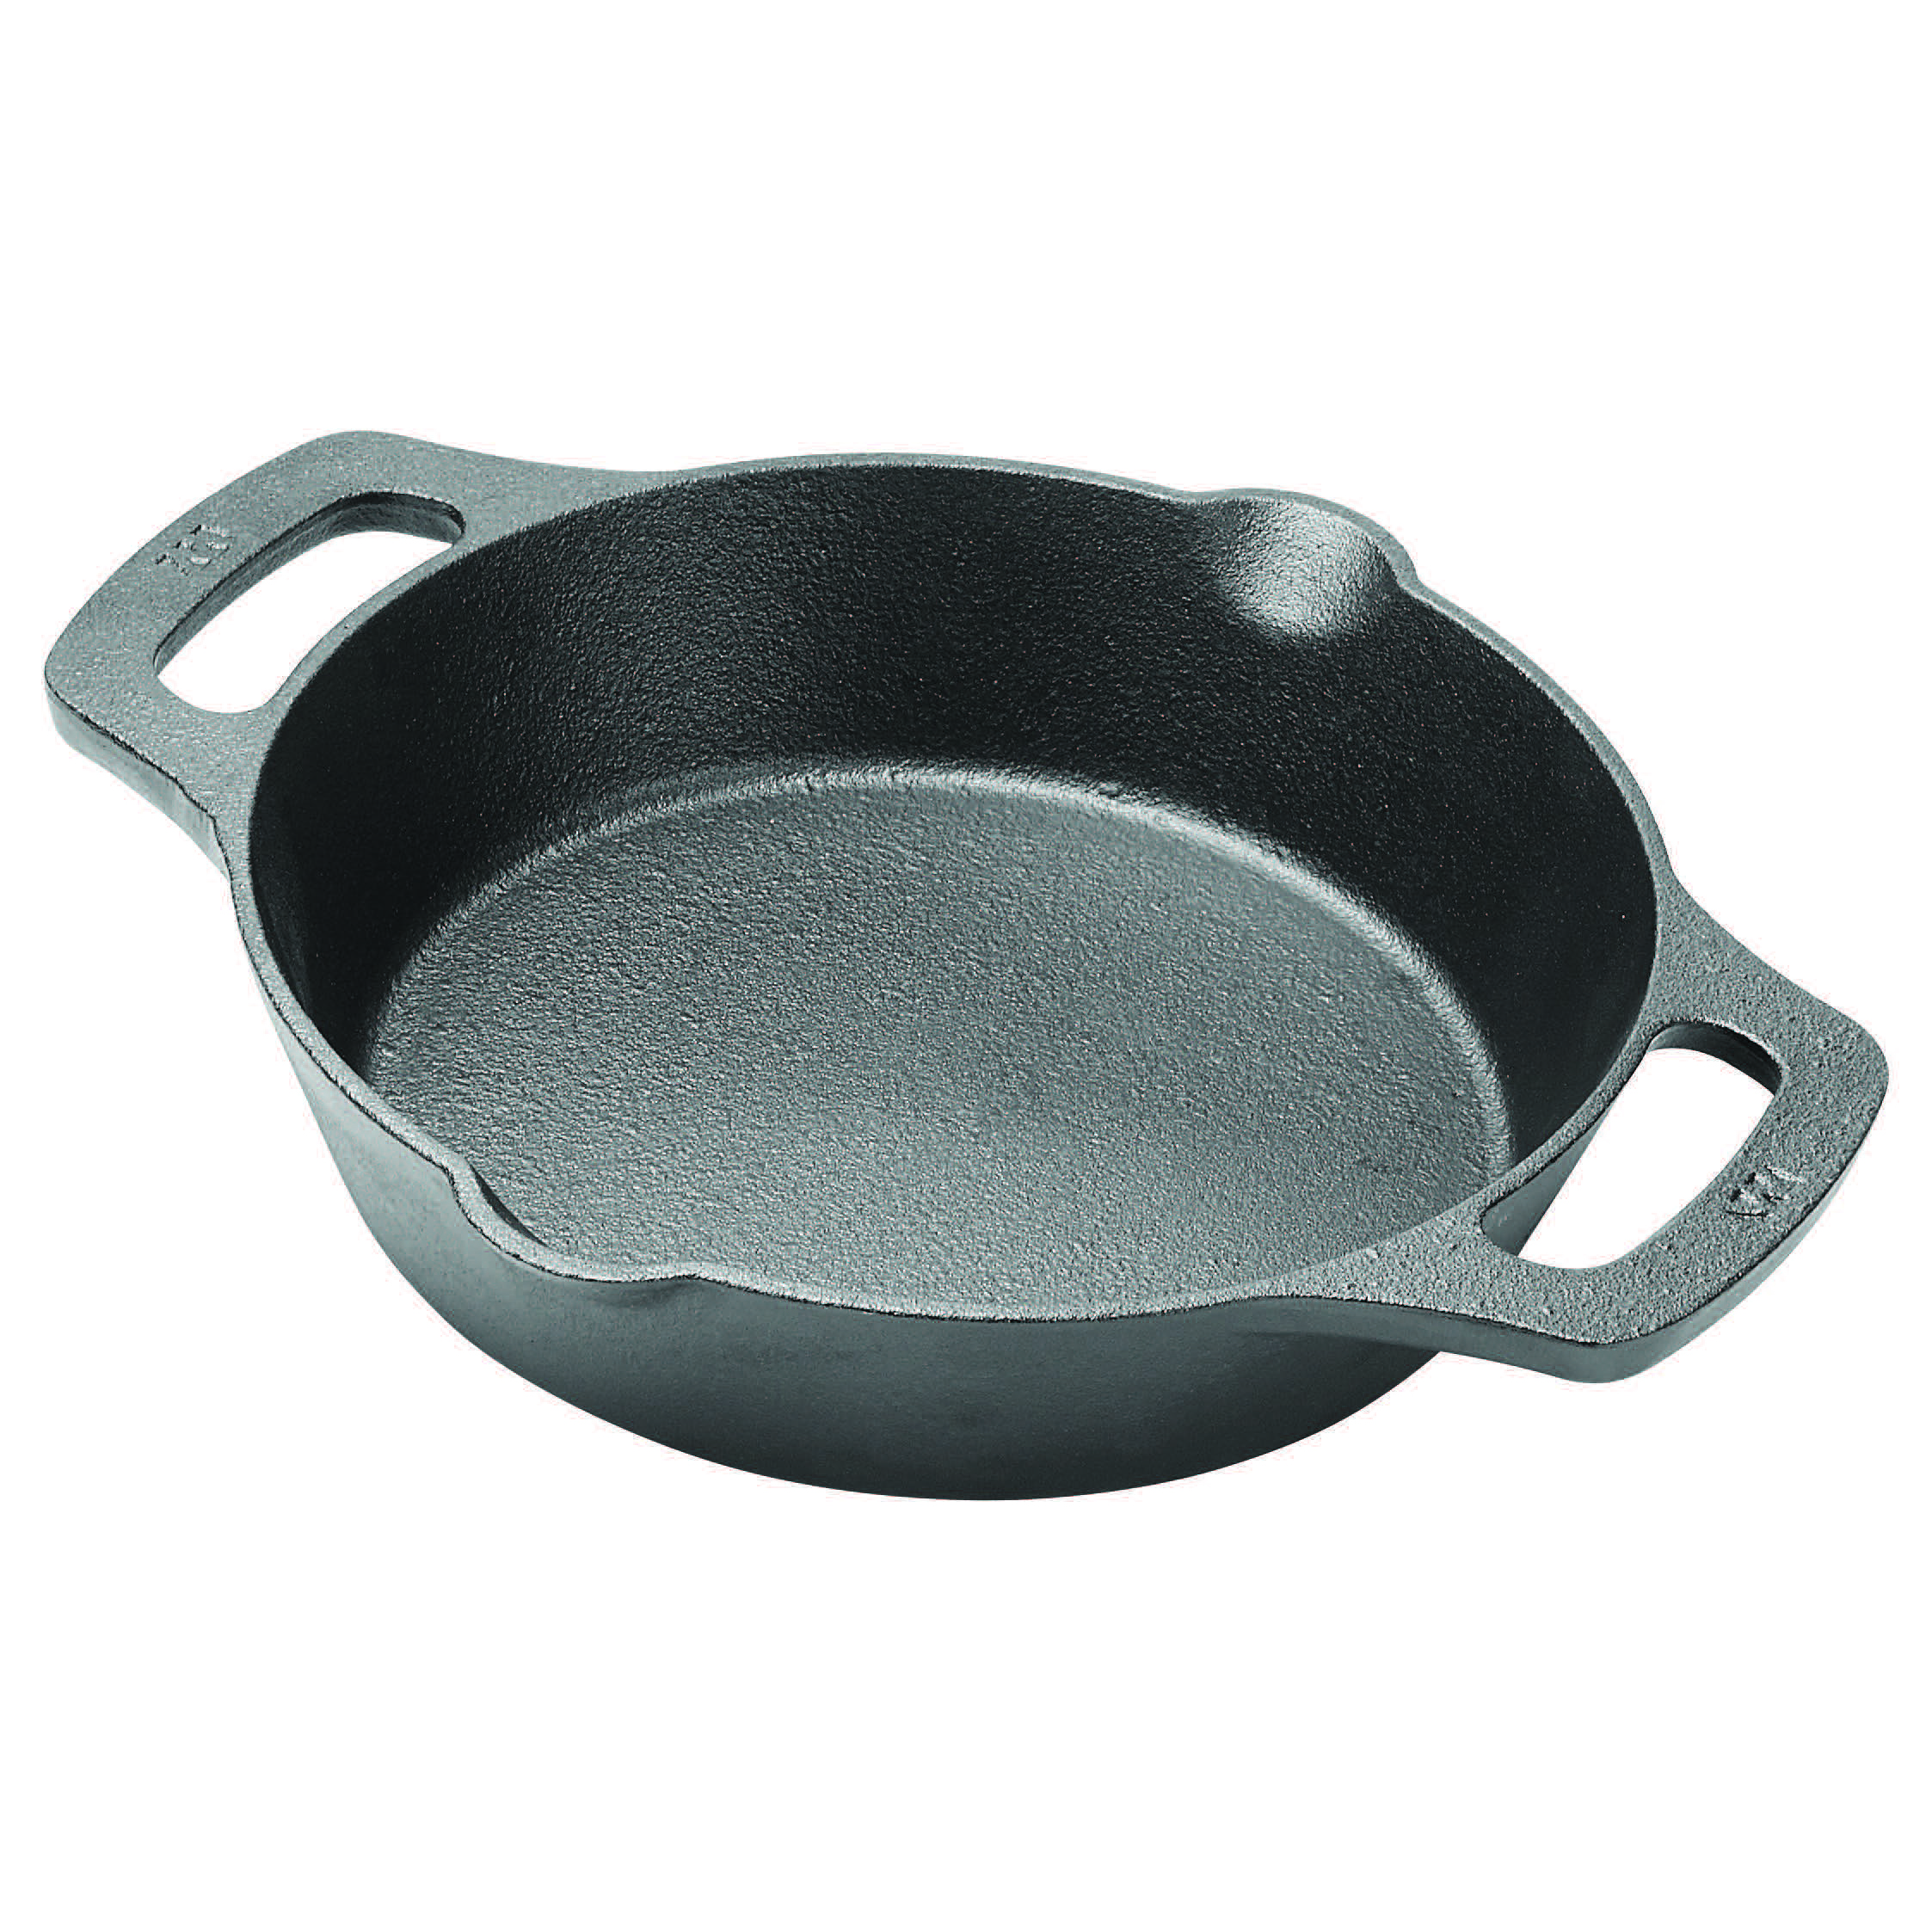 Winco CASD-8 cast iron fry pan